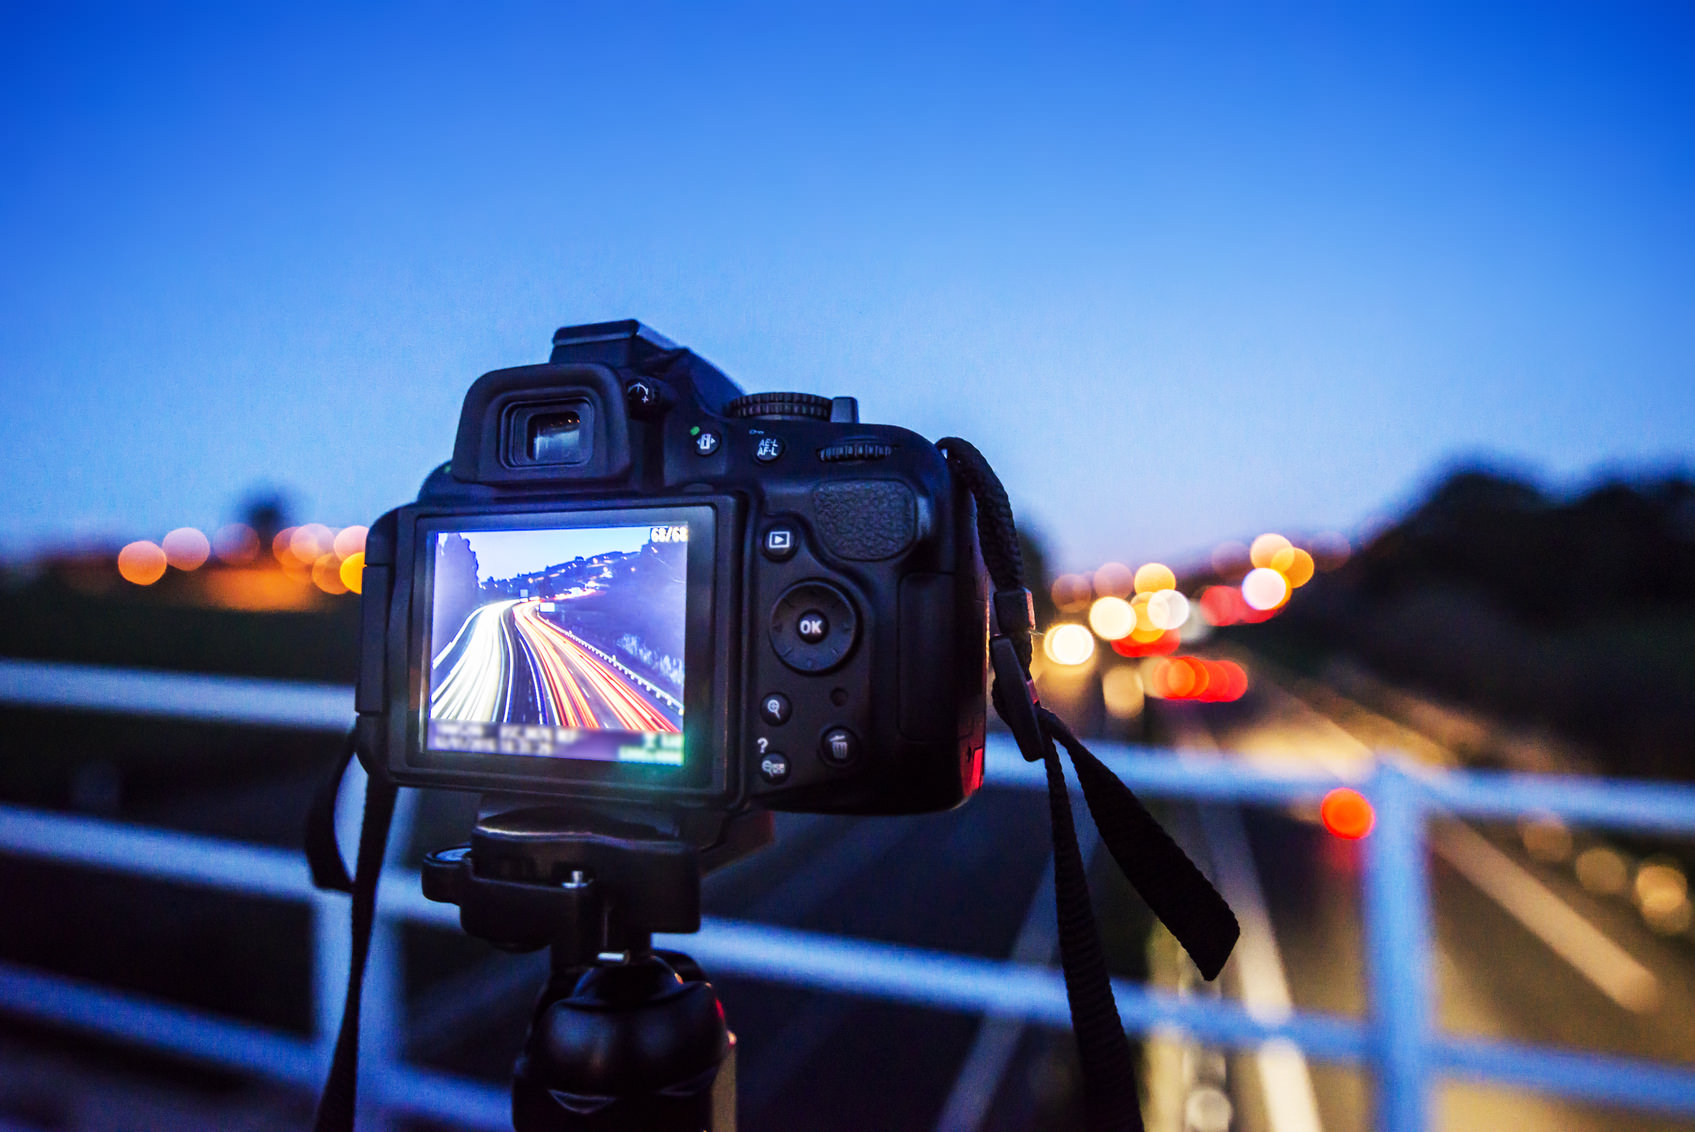 Night Photography Camera Settings Made Easy